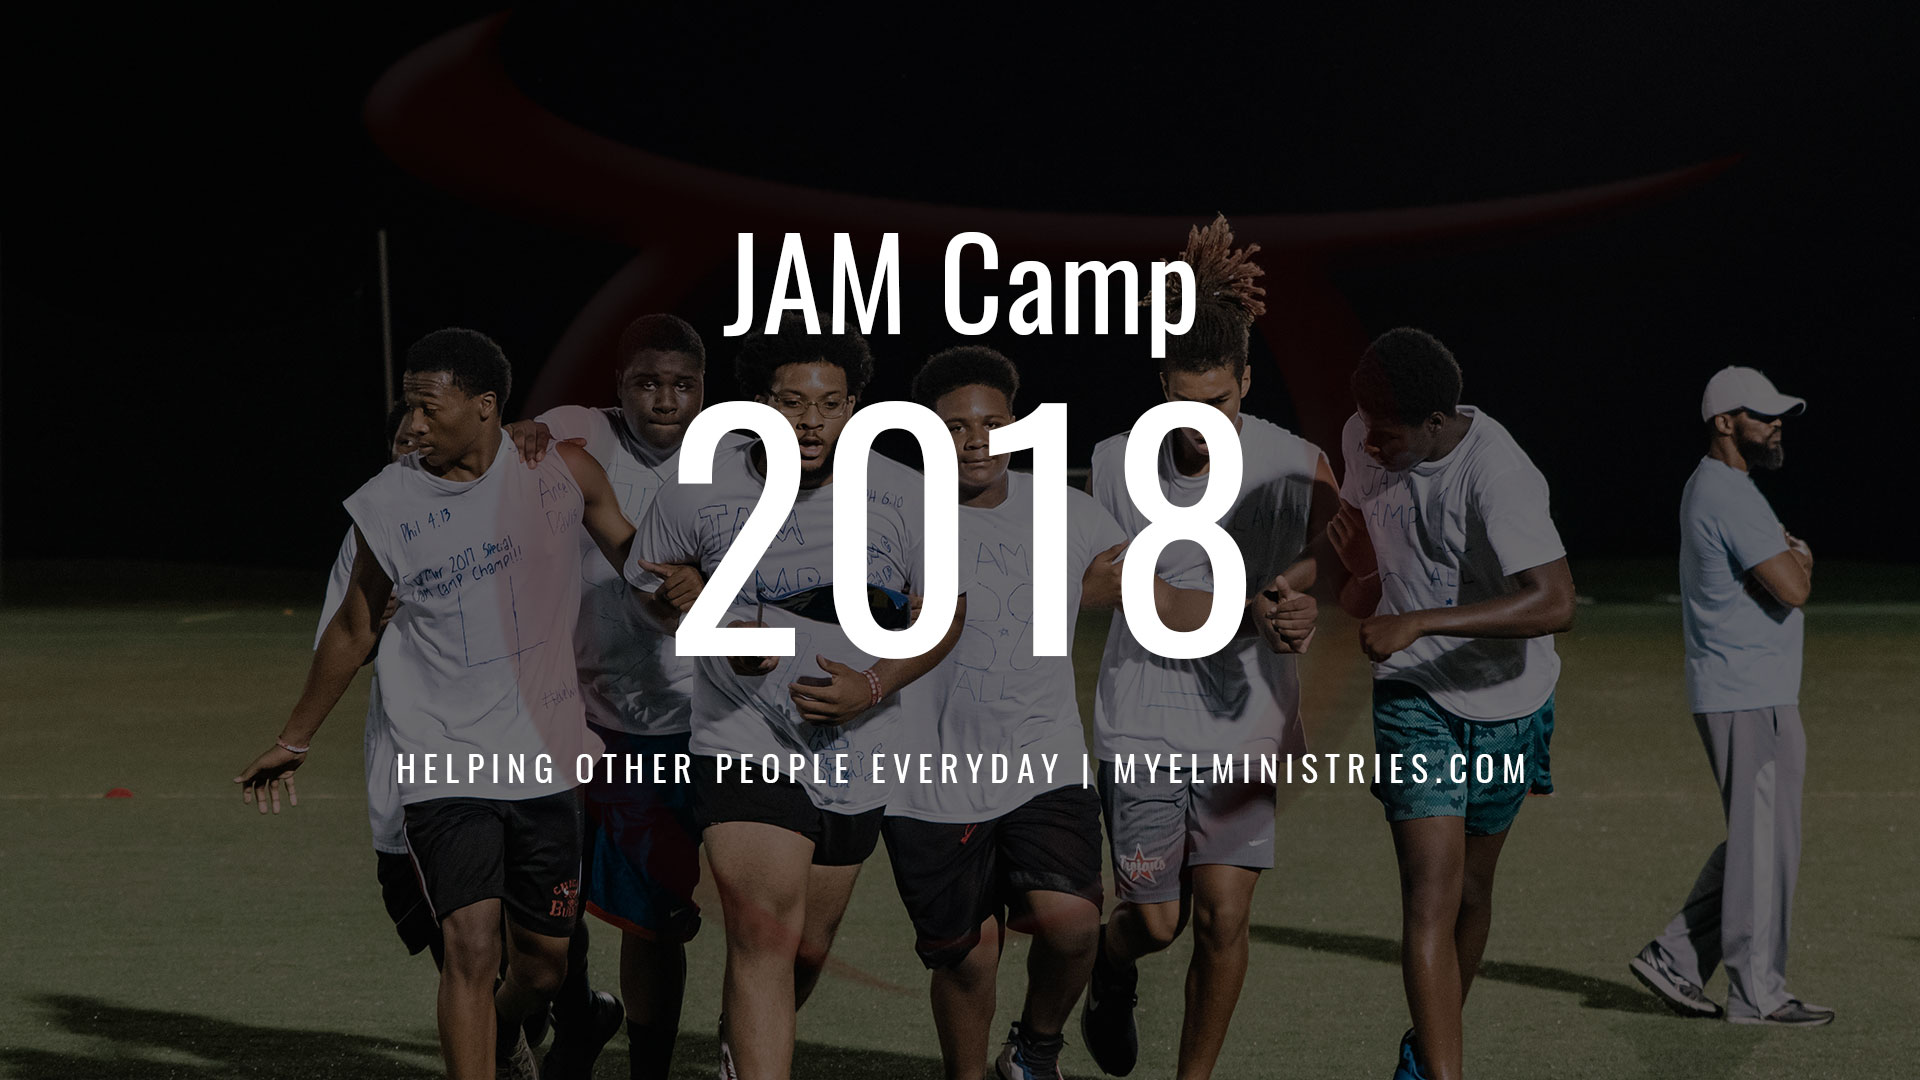 image for 2018 JAM Camp